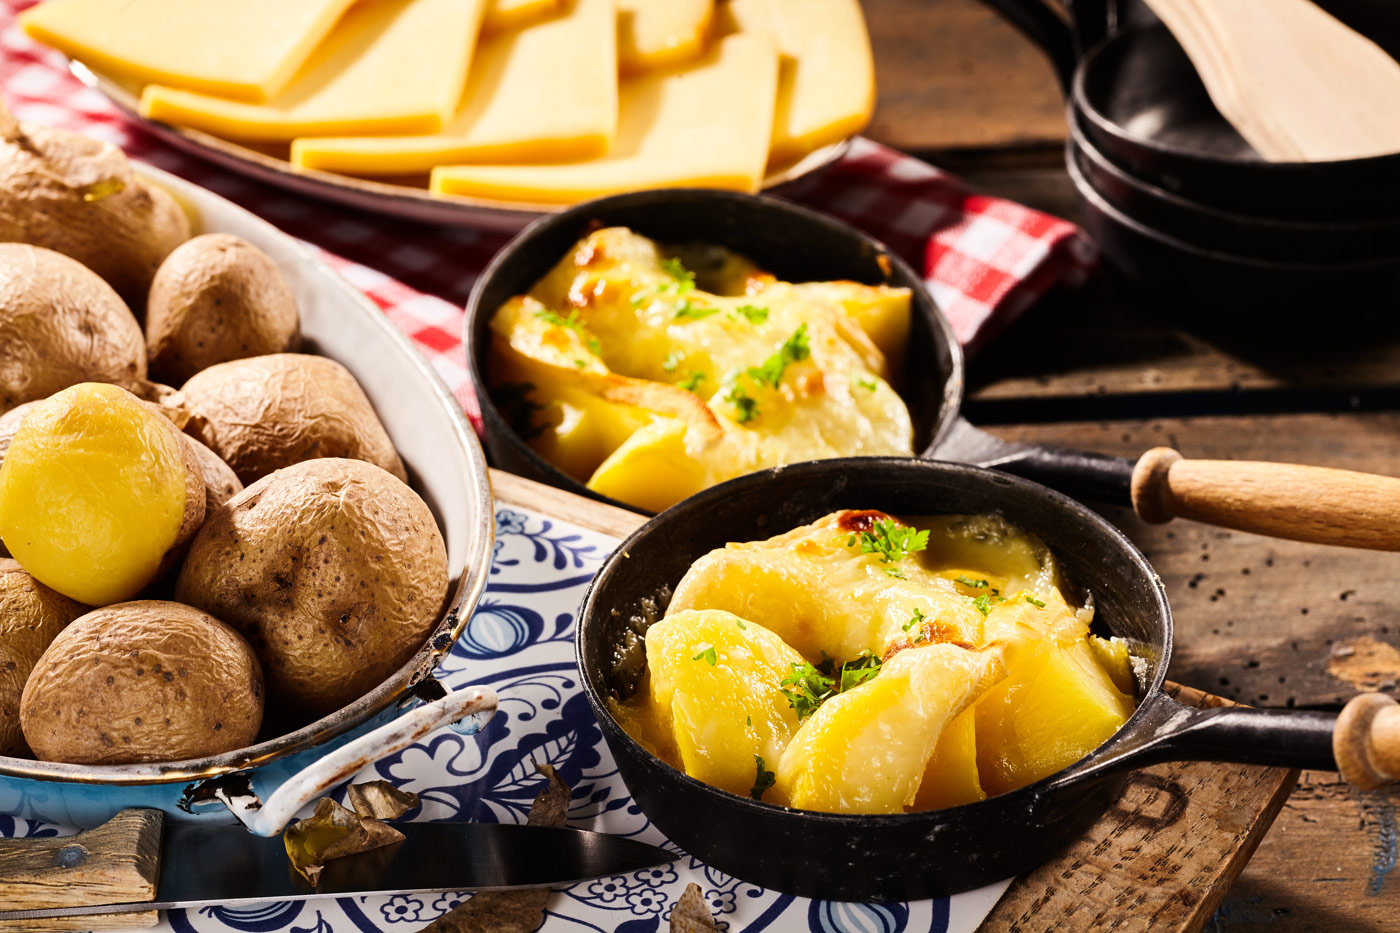 Basisches Silvester-Raclette